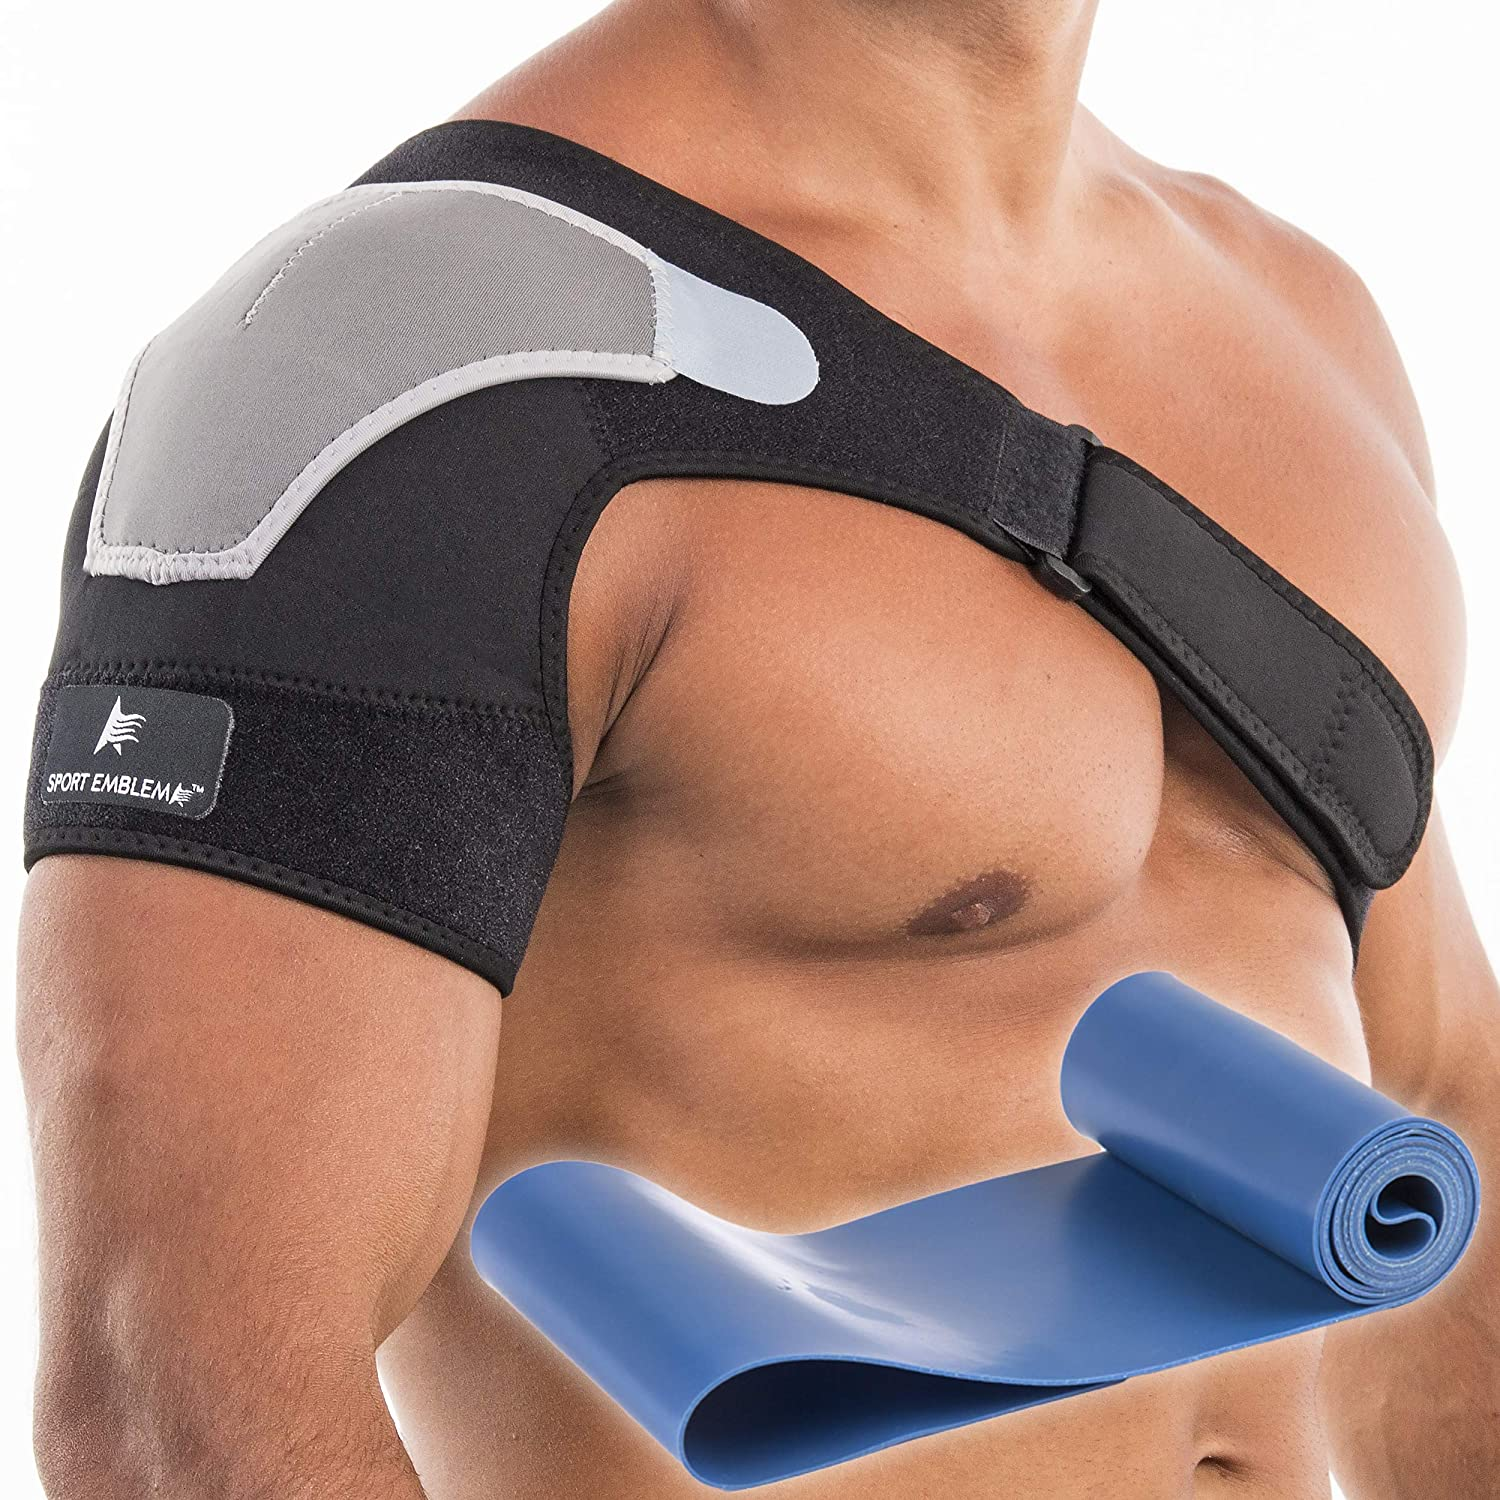 Shoulder Brace for Women or Men, Shoulder Support for Torn Rotator Cuff, Compression Sleeve for Pain Relief, Stability Brace and Shoulder Immobilizer for Dislocation, Subluxation (Small-Medium): Industrial & Scientific